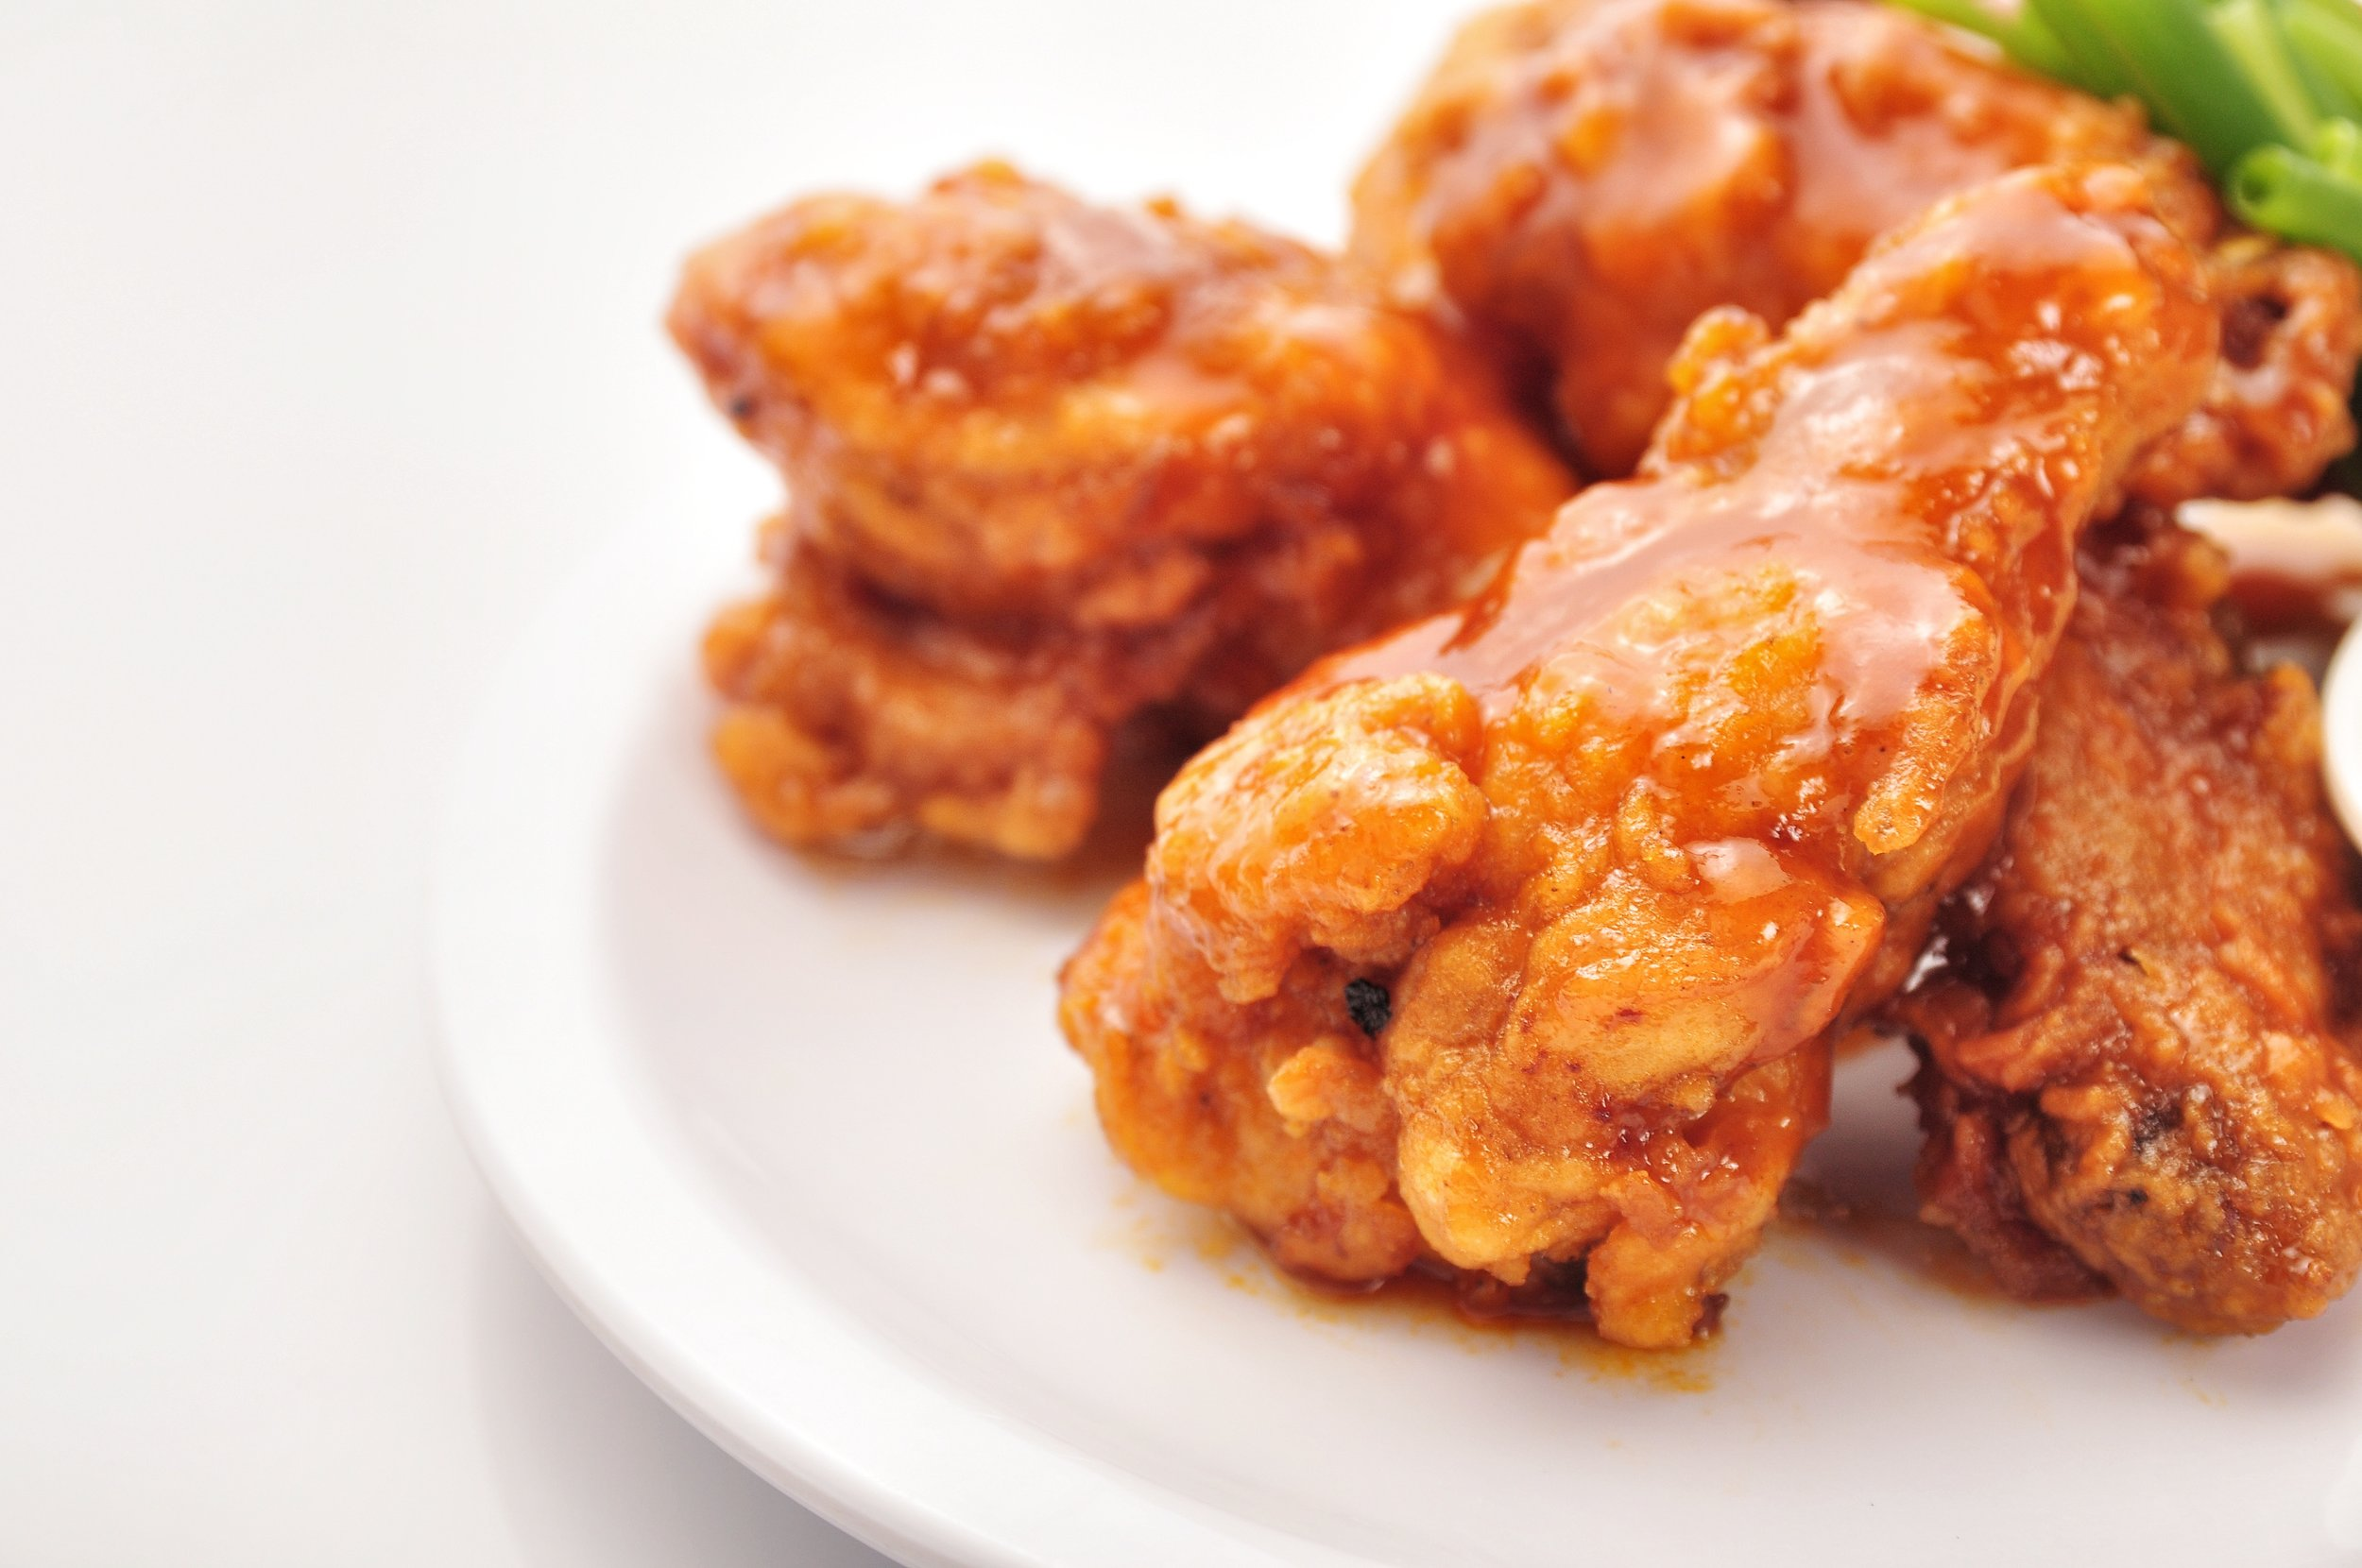 Mild Buffalo Wings - Order in 1/2 or Full-Tray for the BIG GAME this week!